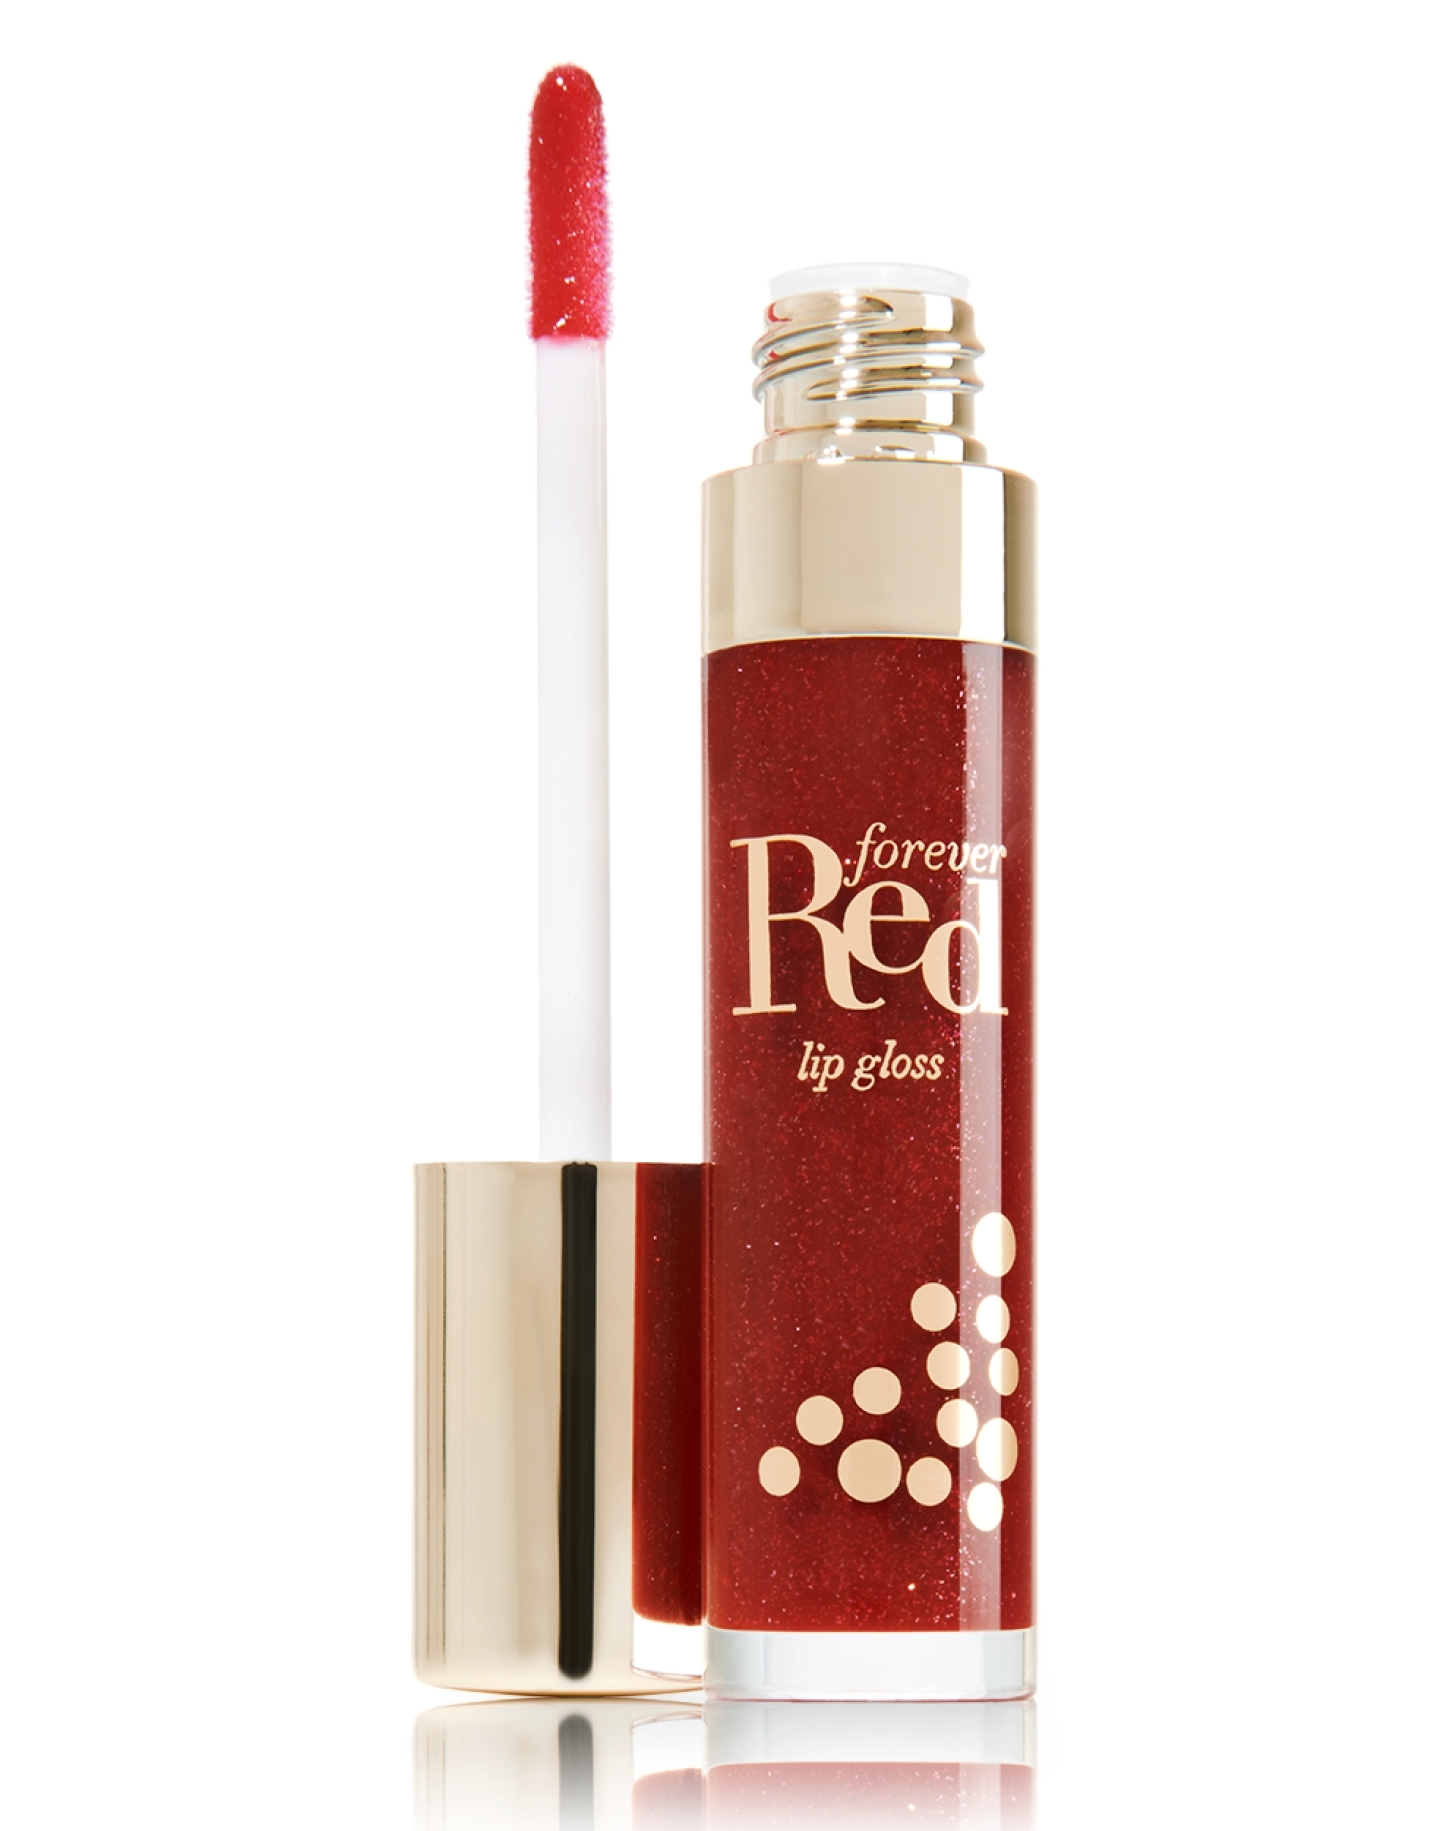 Liplicious Forever Red Lip Gloss